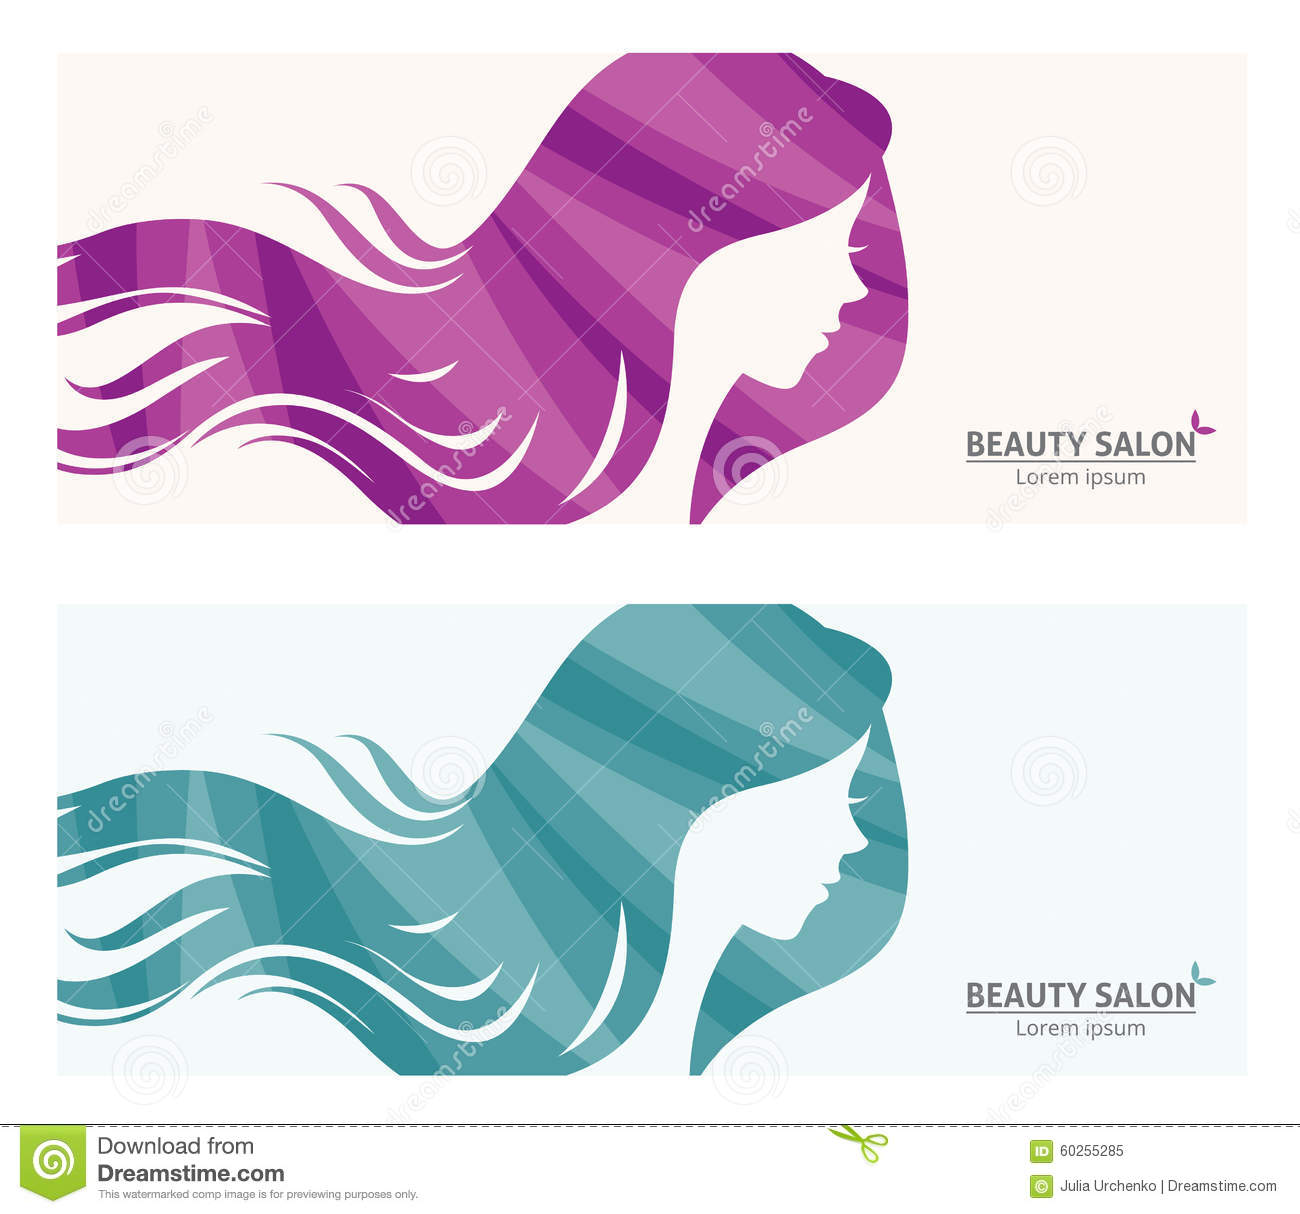 Banner or business card stylized woman profile for beauty salon banner or business card stylized woman profile for beauty salon royalty free vector magicingreecefo Images